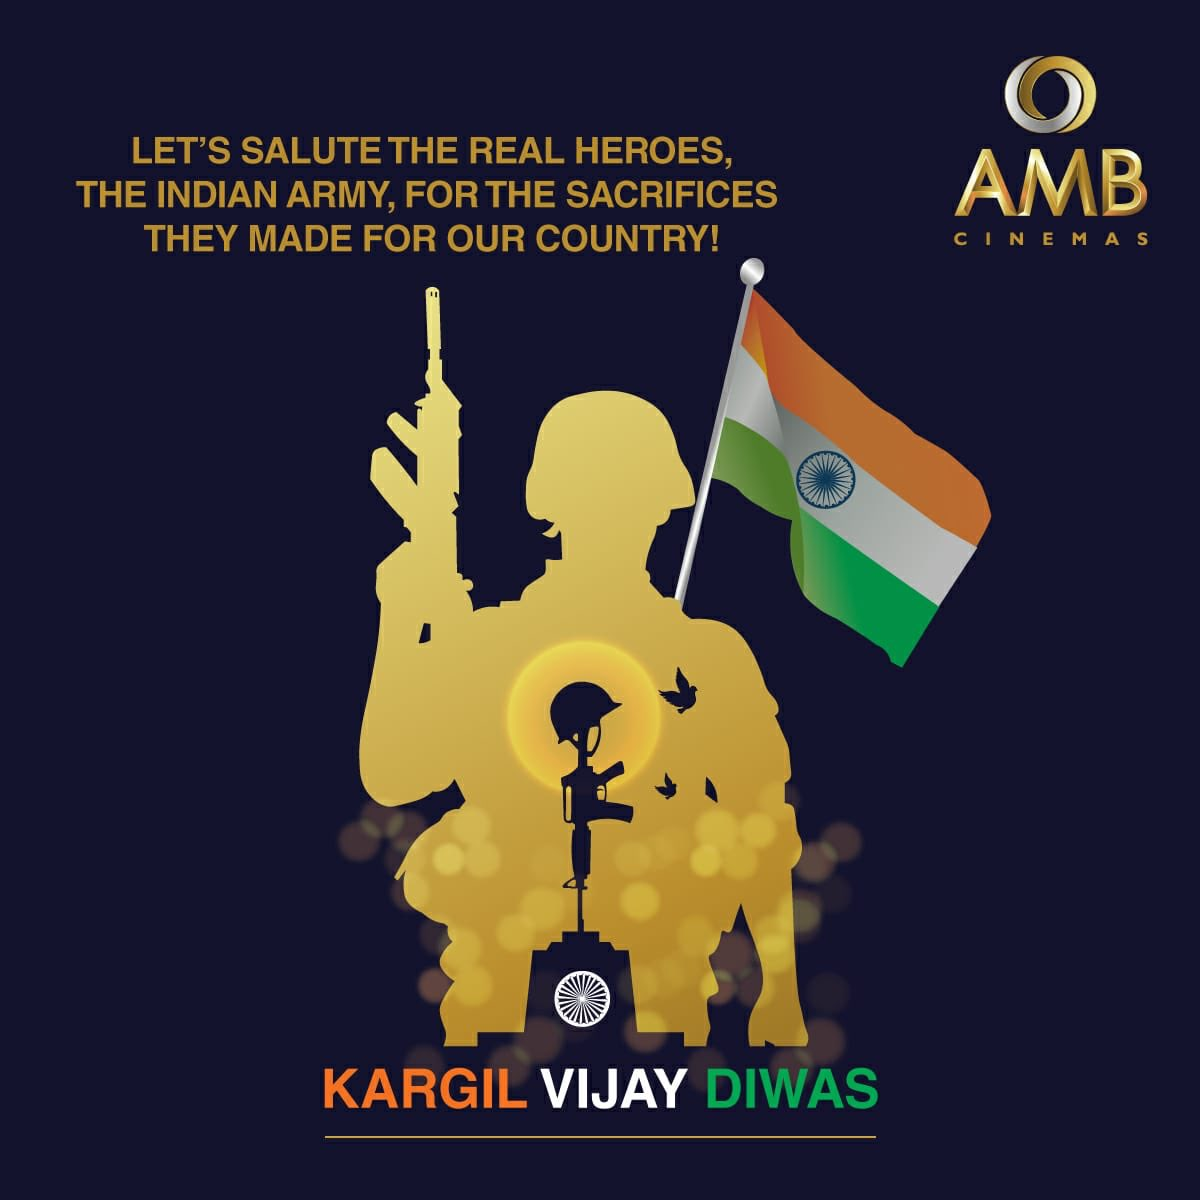 AMB Cinemas salutes the valour and grit of the Indian soldiers on the occasion of 21st anniversary of the Kargil Vijay Diwas. We are proud of the heroes of India, who are dedicated to protecting our motherland!🇮🇳❤️ #KargilWar #KargilVijayDiwas #Victory #Salute #Soldiers (1/2)